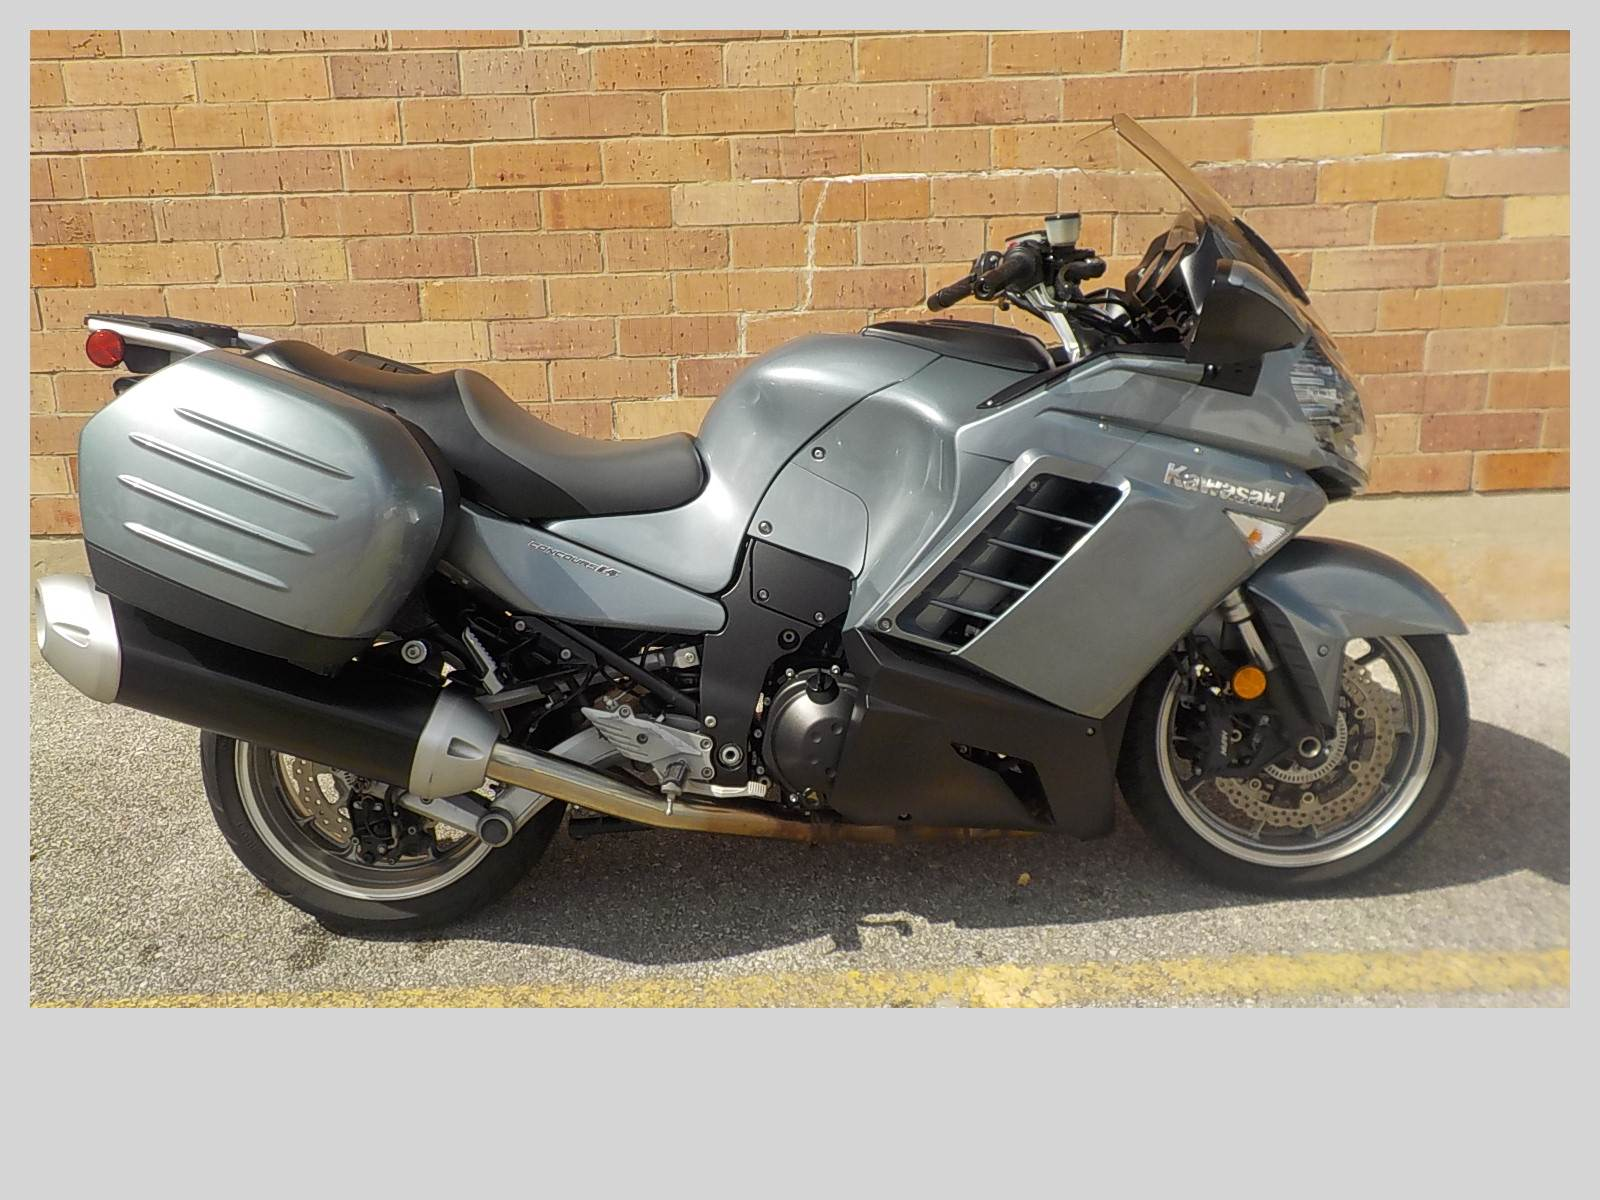 2008 Kawasaki Concours 14 ABS for sale 16925